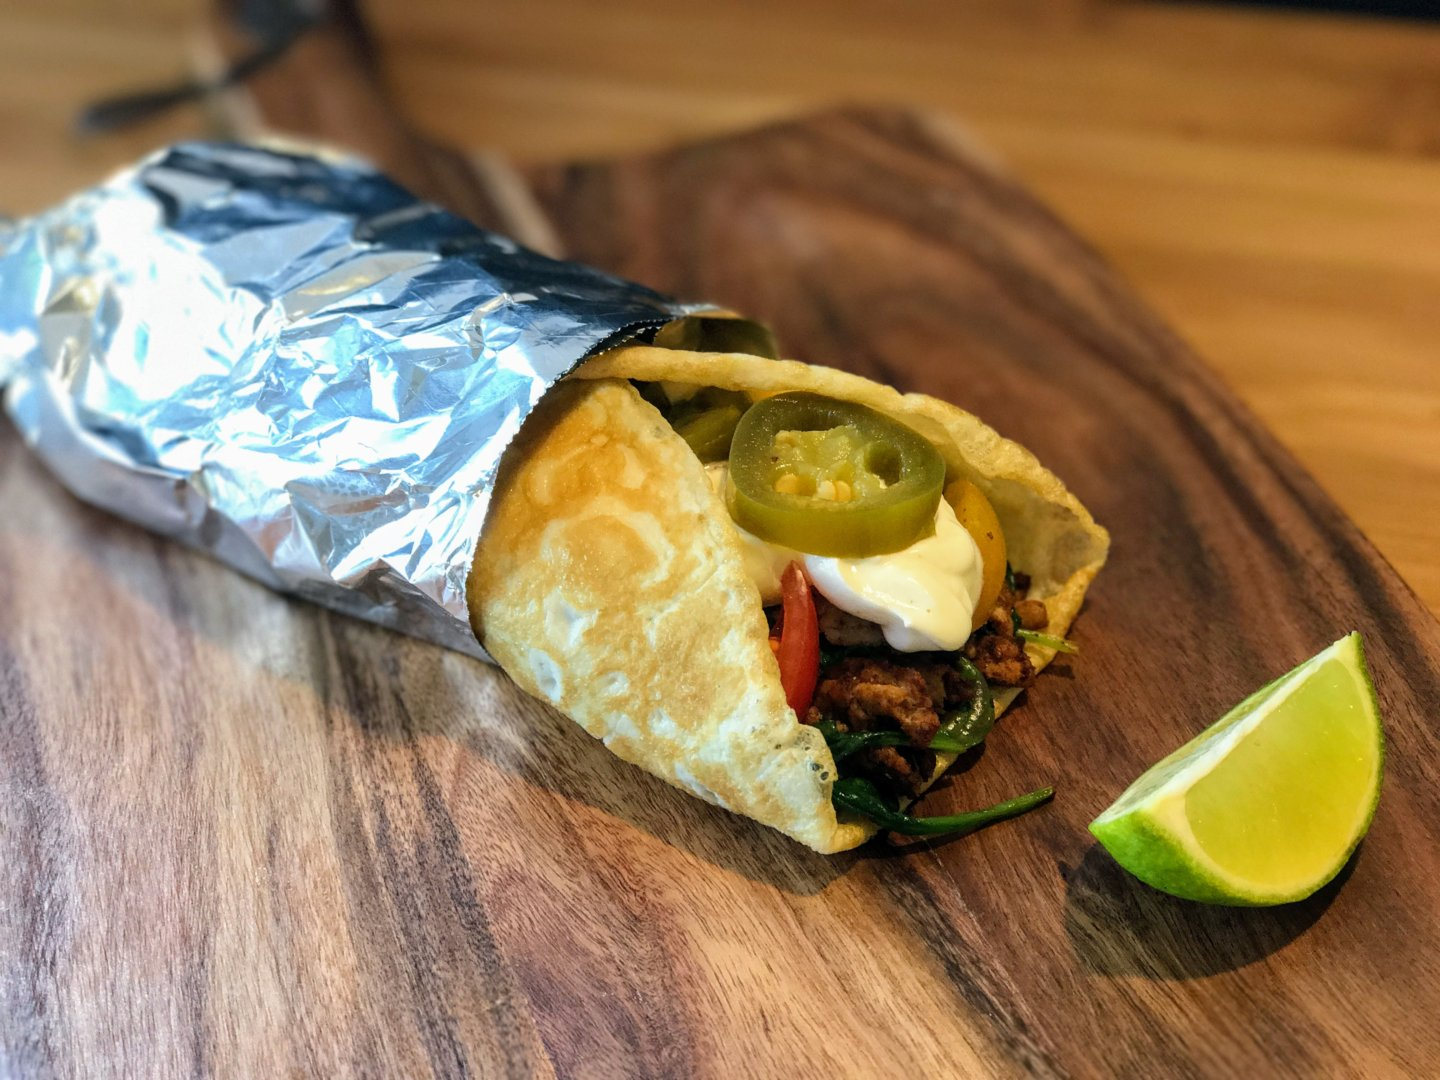 Breakfast burrito with a twist